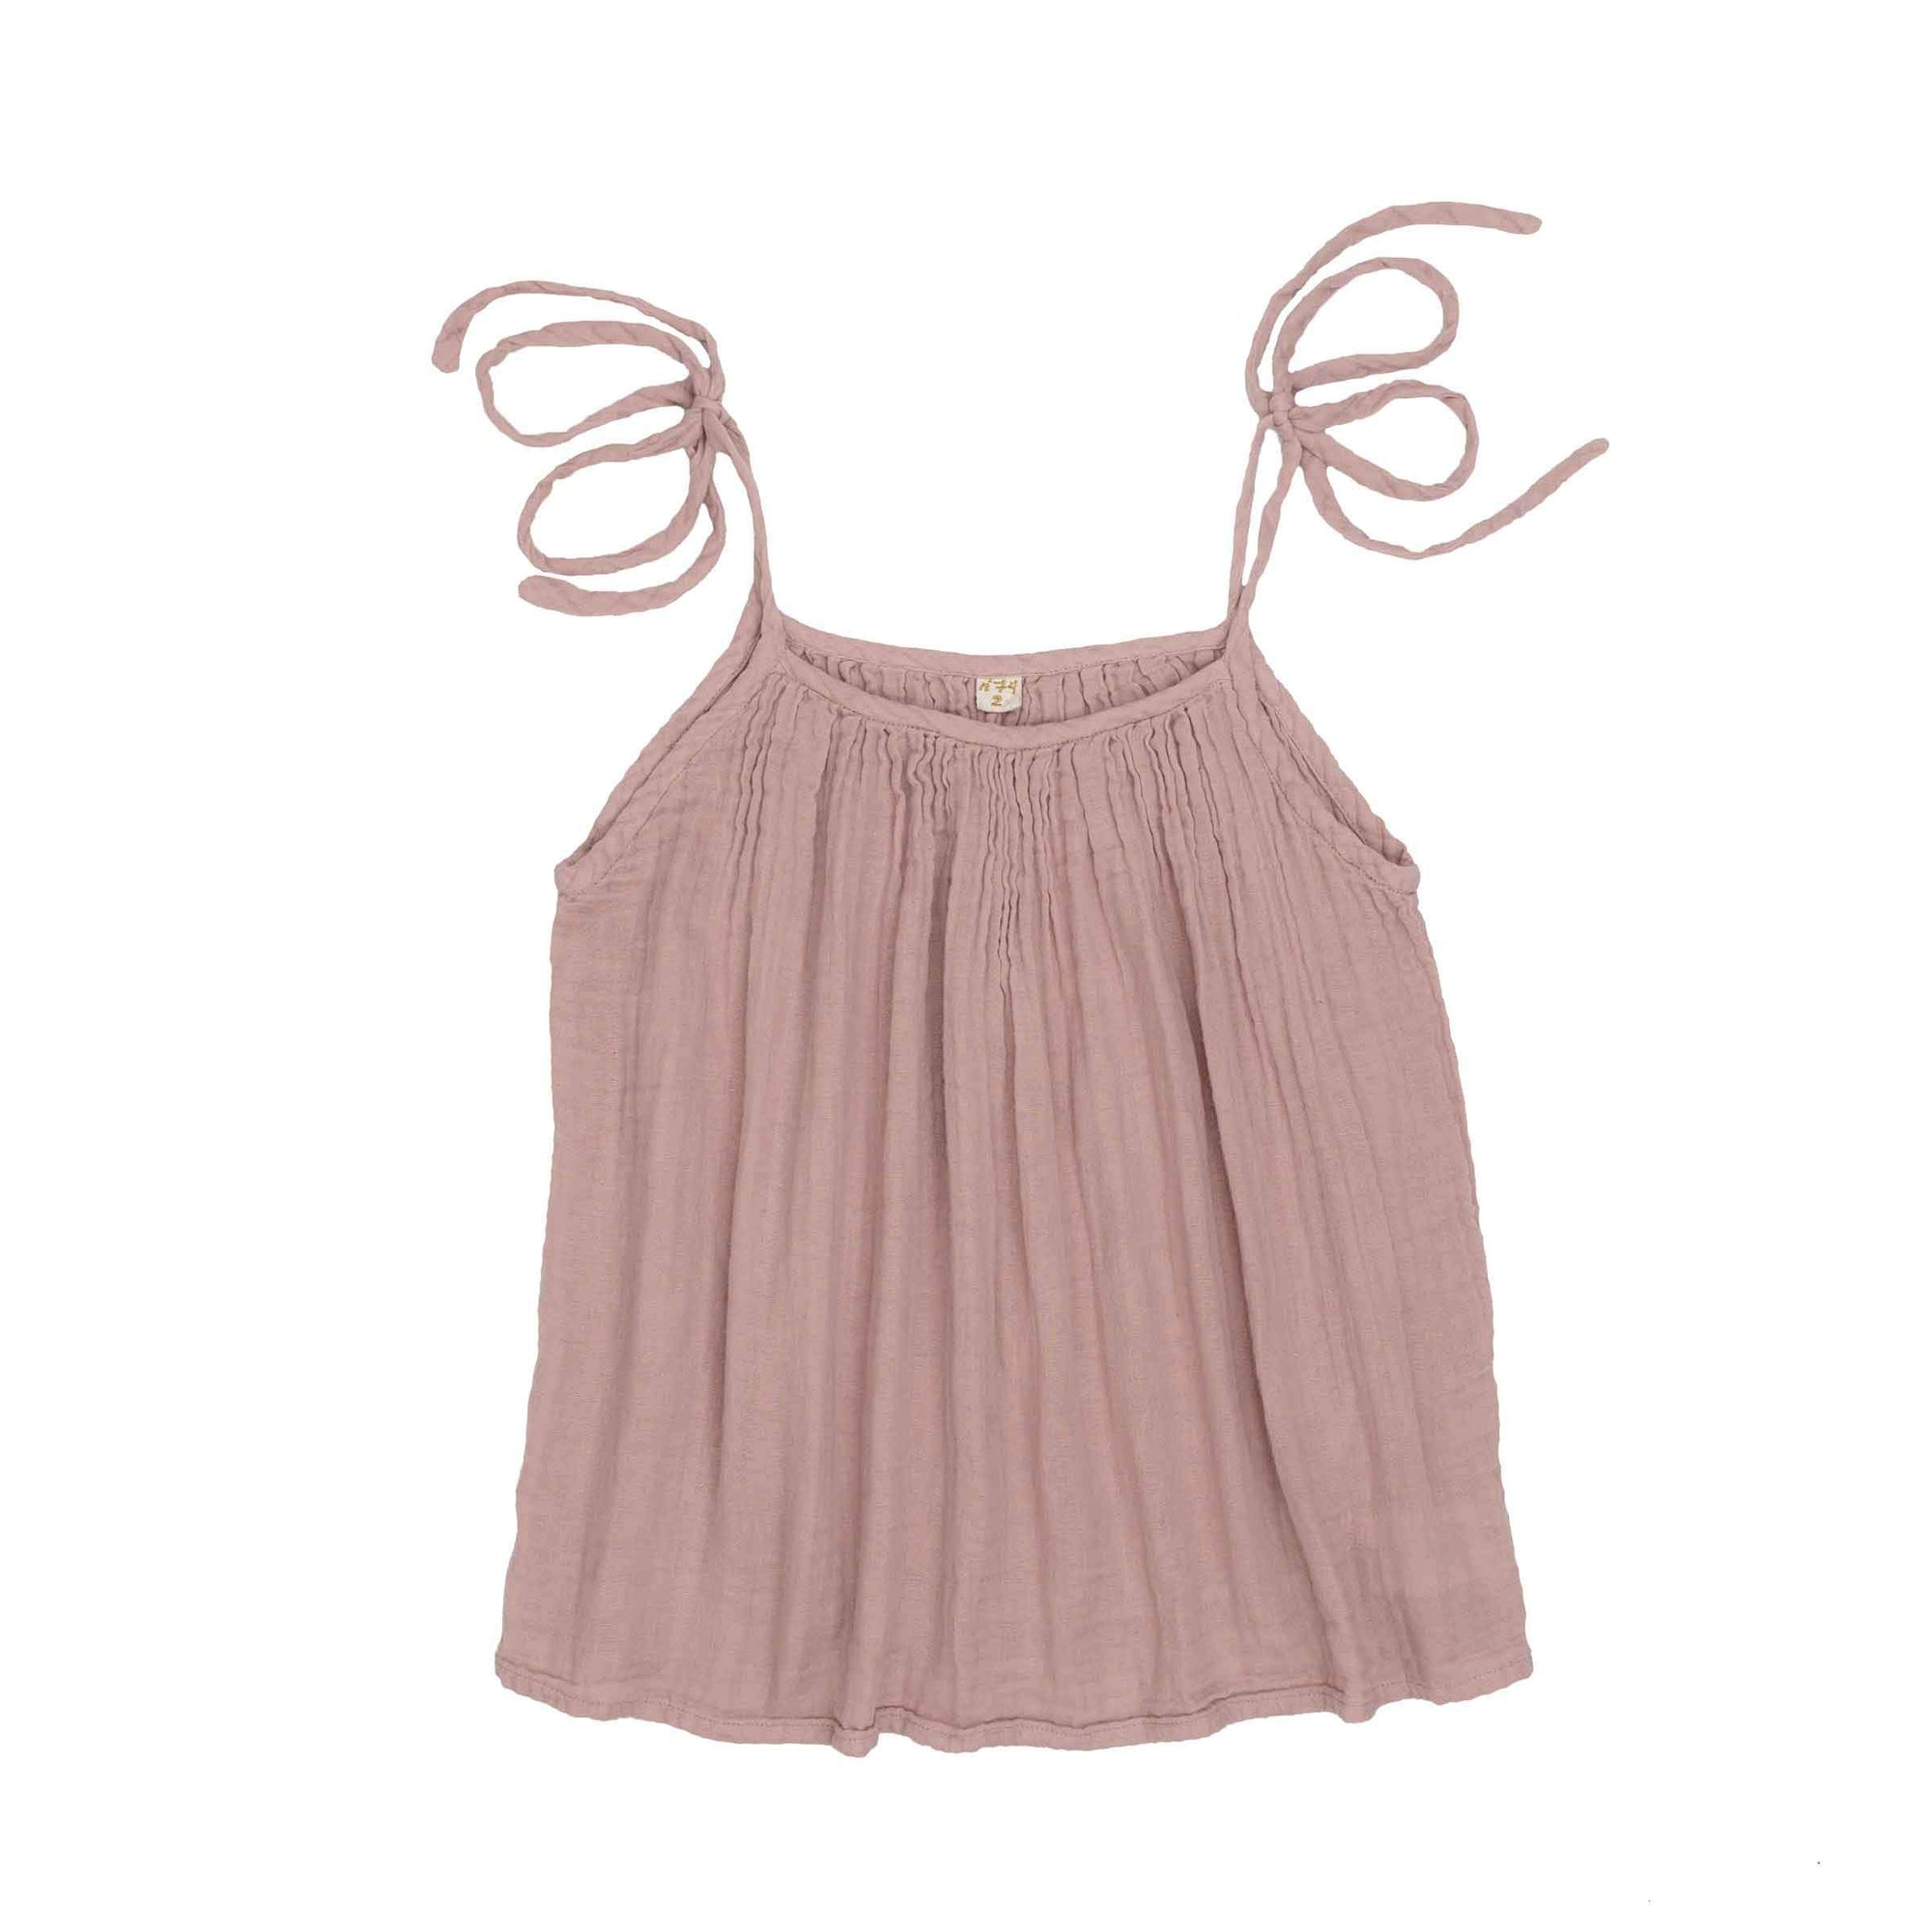 Numero 74 Mia Dress Short Women's Dusty Pink Womens Dresses - Tiny People Cool Kids Clothes